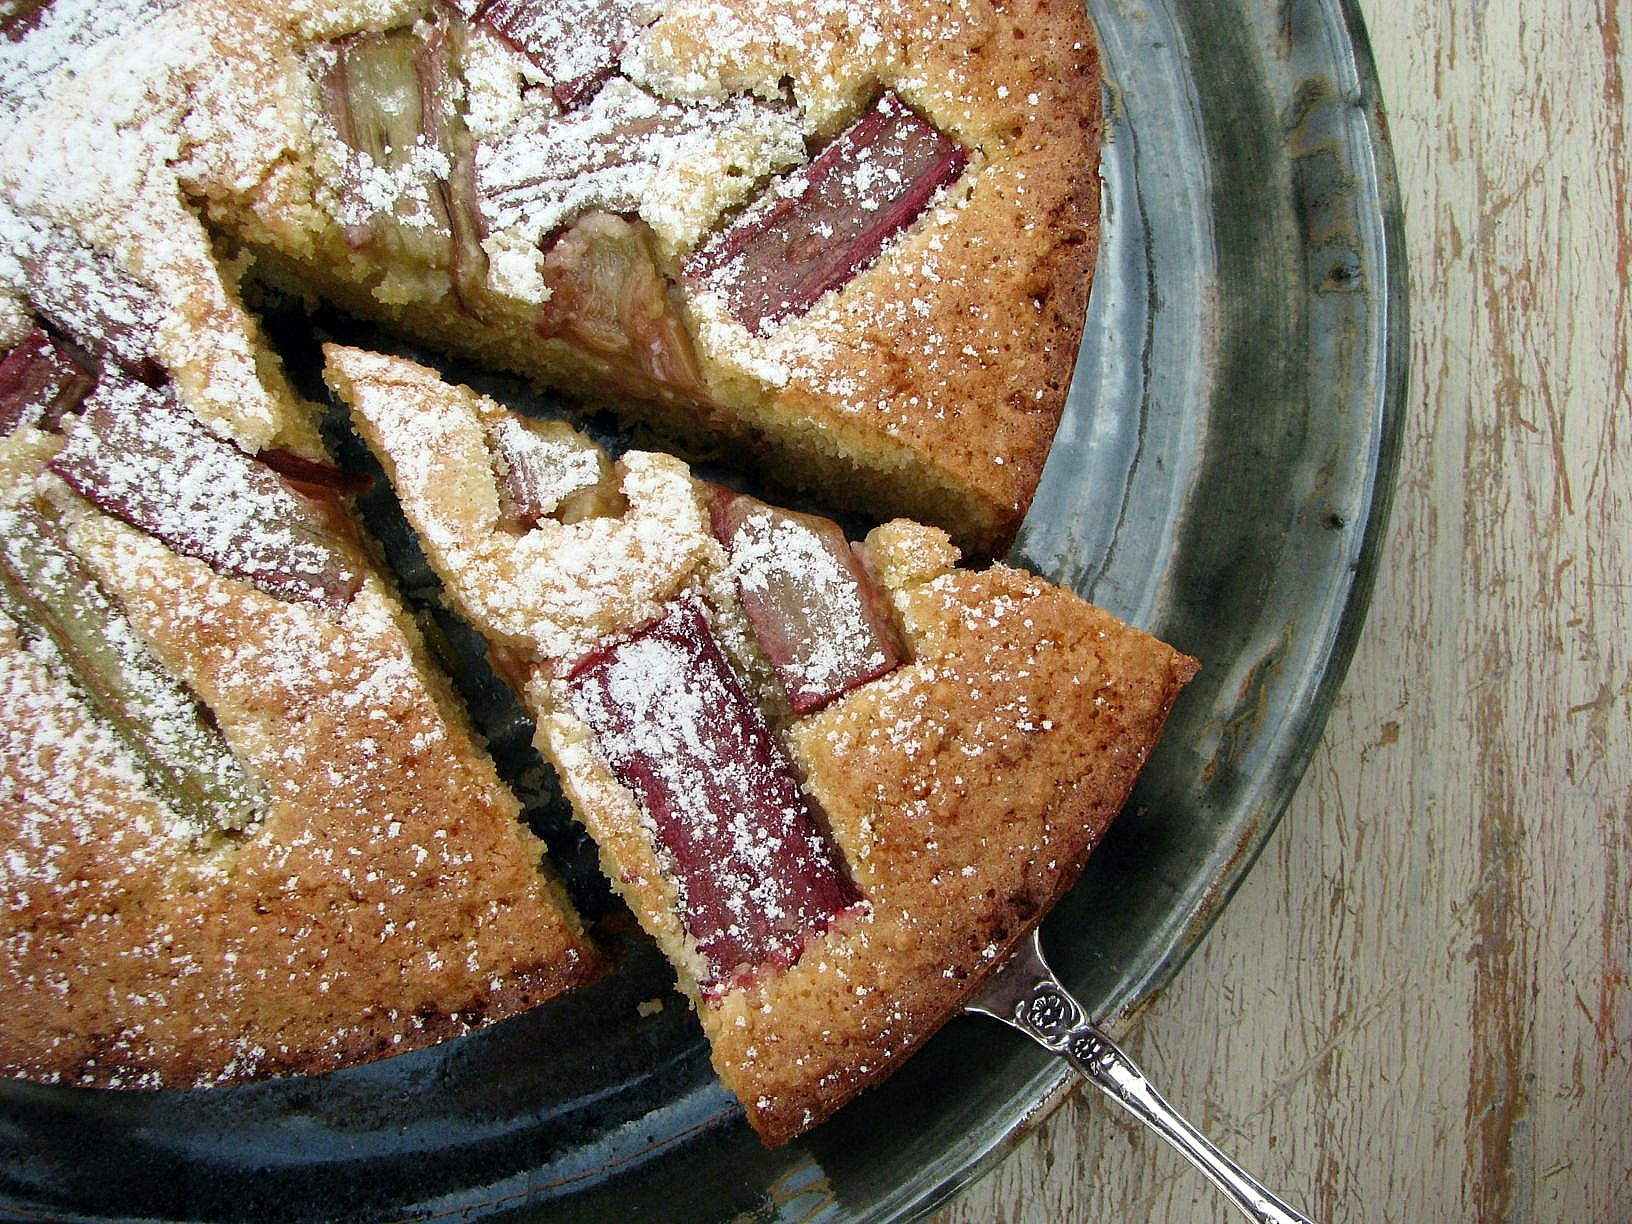 gluten-free rhubarb, lemon and almond cake